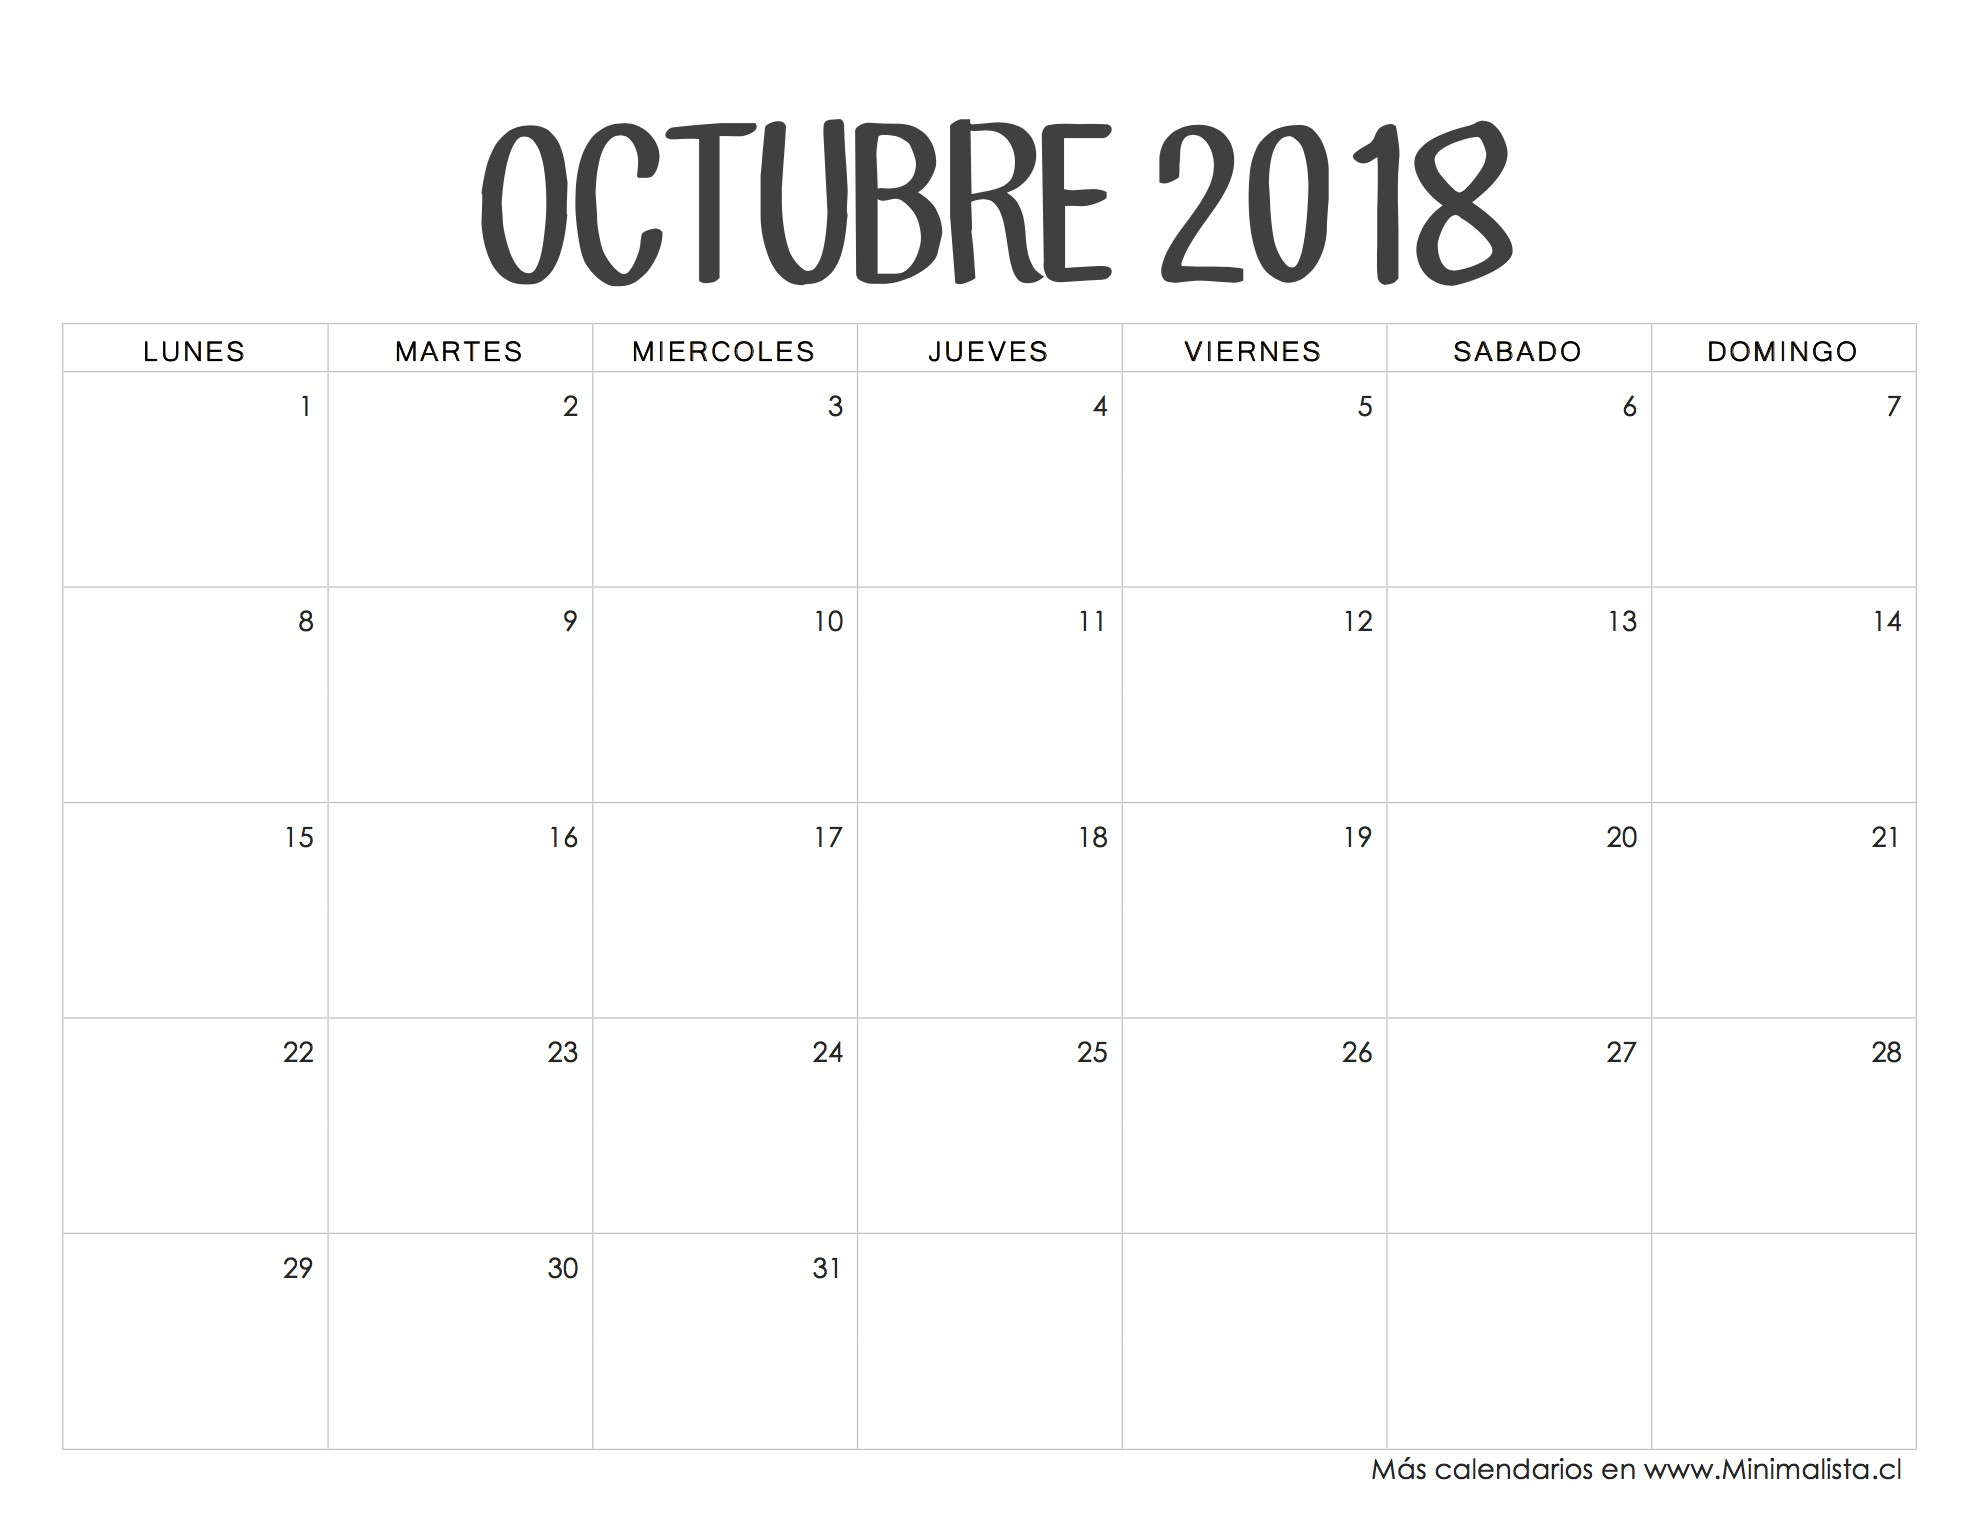 Calendario 2018 Y 2019 Mexico Sep Más Actual Calendario Octubre 2018 Bullet Joanar Pinterest Of Calendario 2018 Y 2019 Mexico Sep Más Populares El Incre­ble Calendario 2018 De Alonso 25 Carreras Entre F1 Y Wec